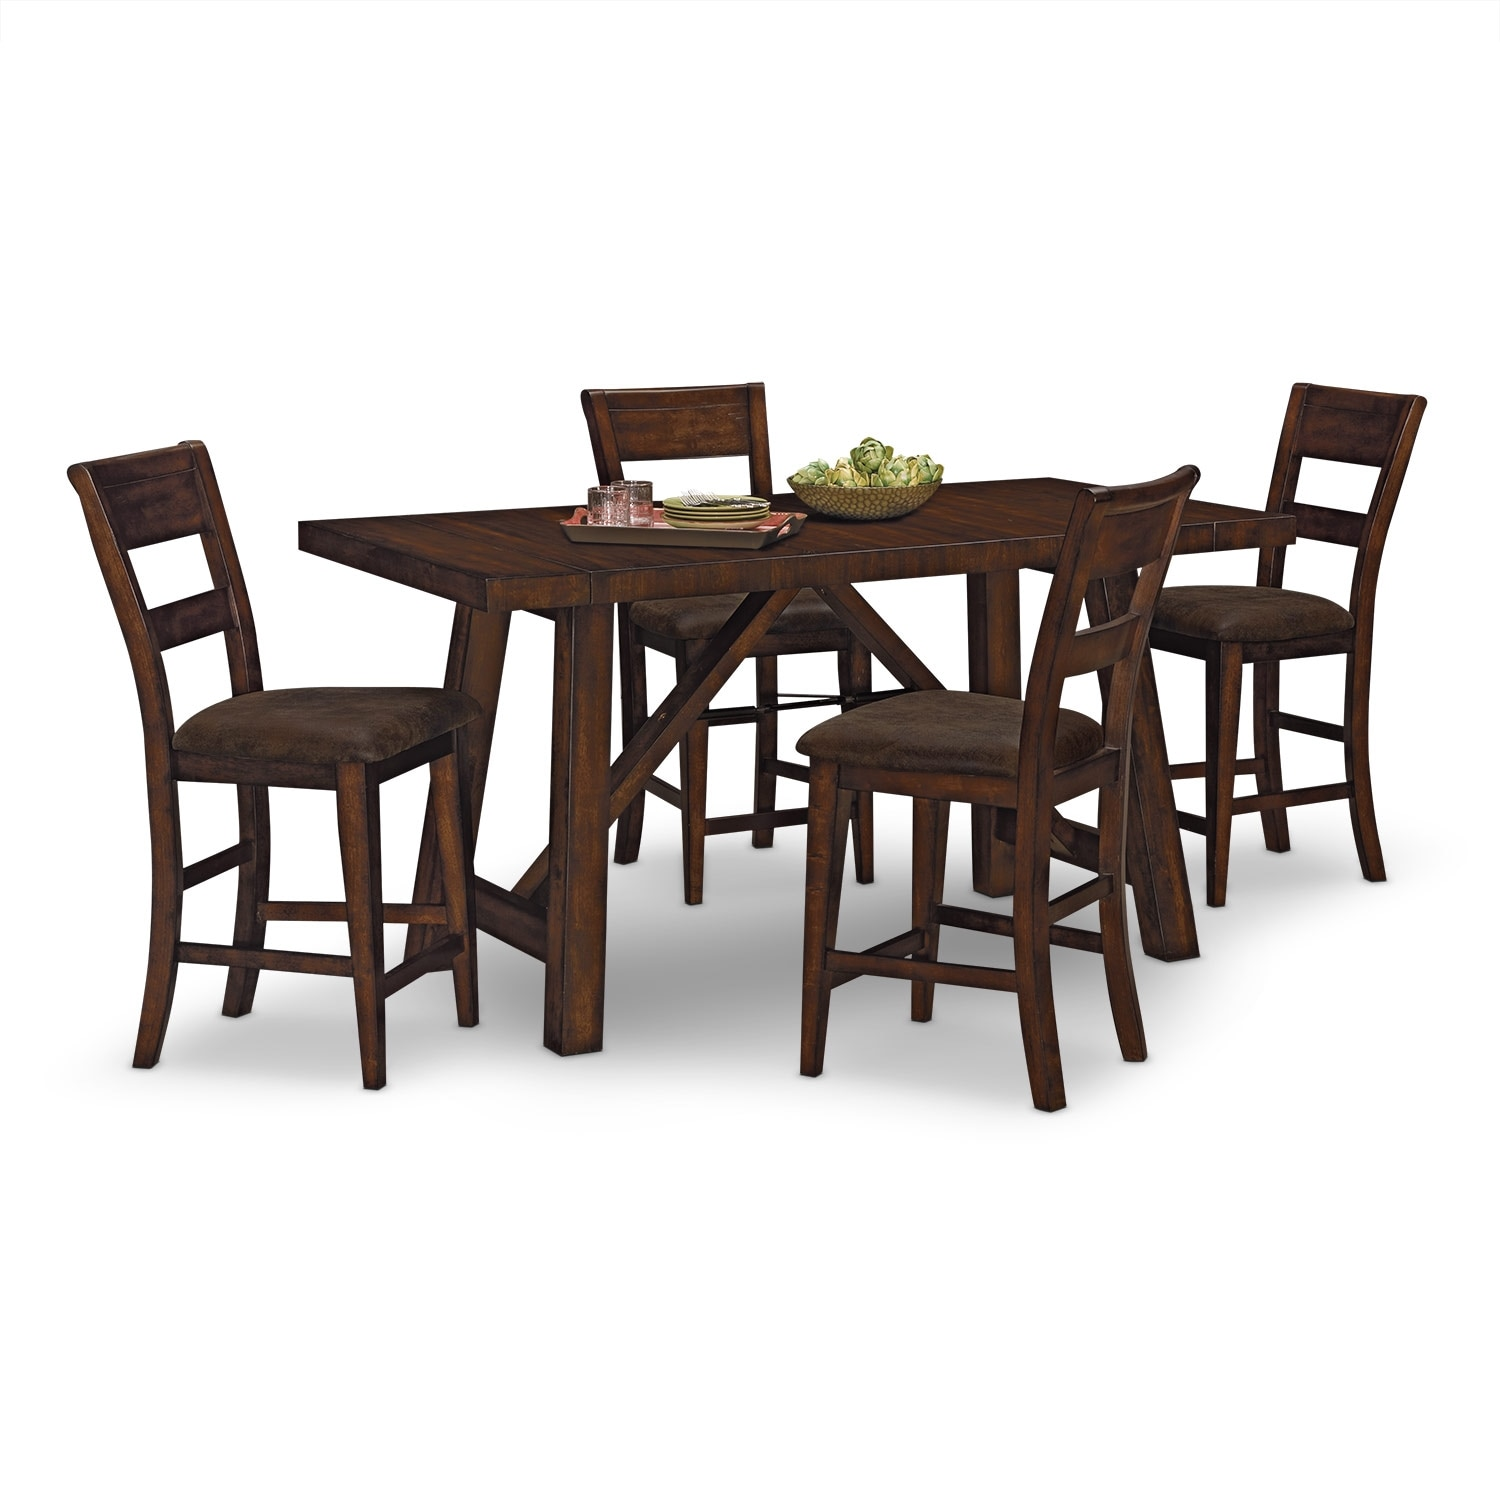 Value city furniture for Dining room furniture specials